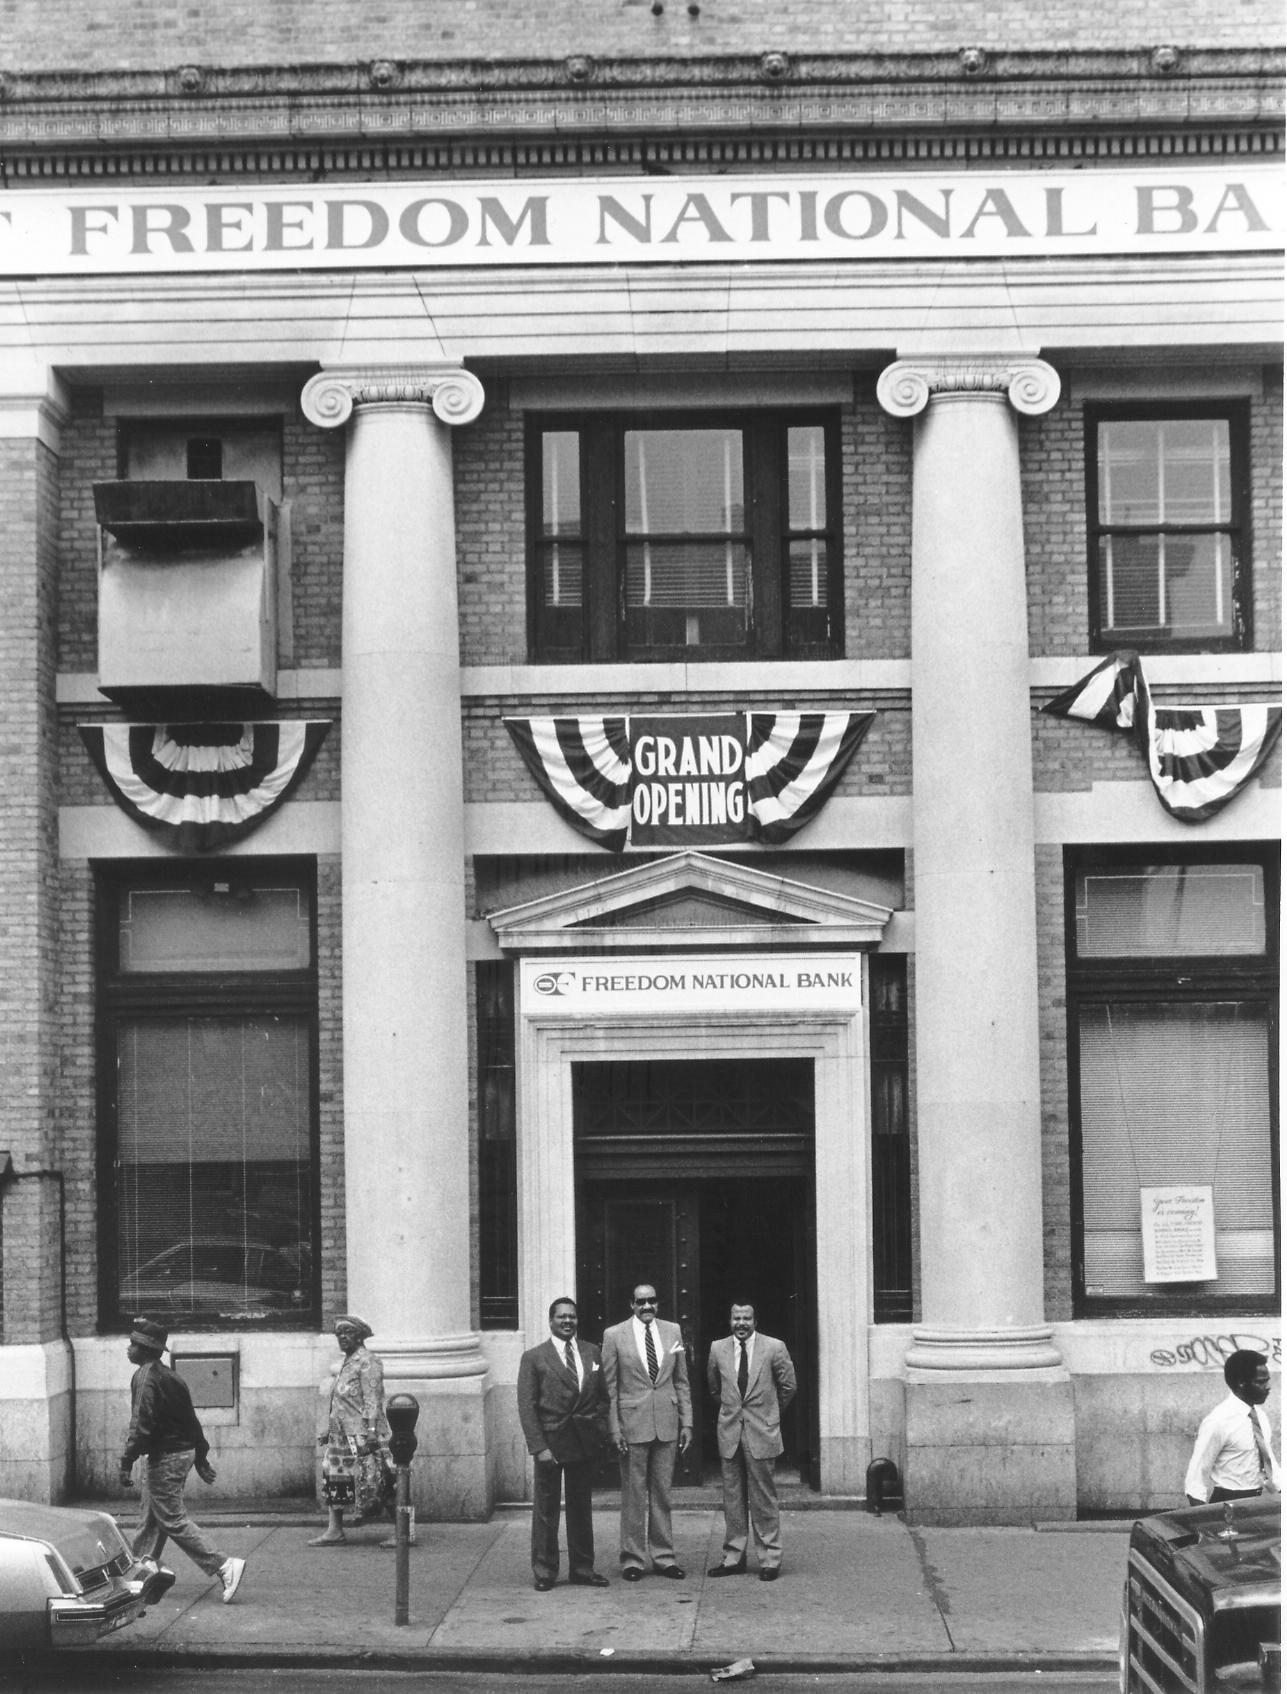 Freedom National Bank. Jackie established this bank in 1964.